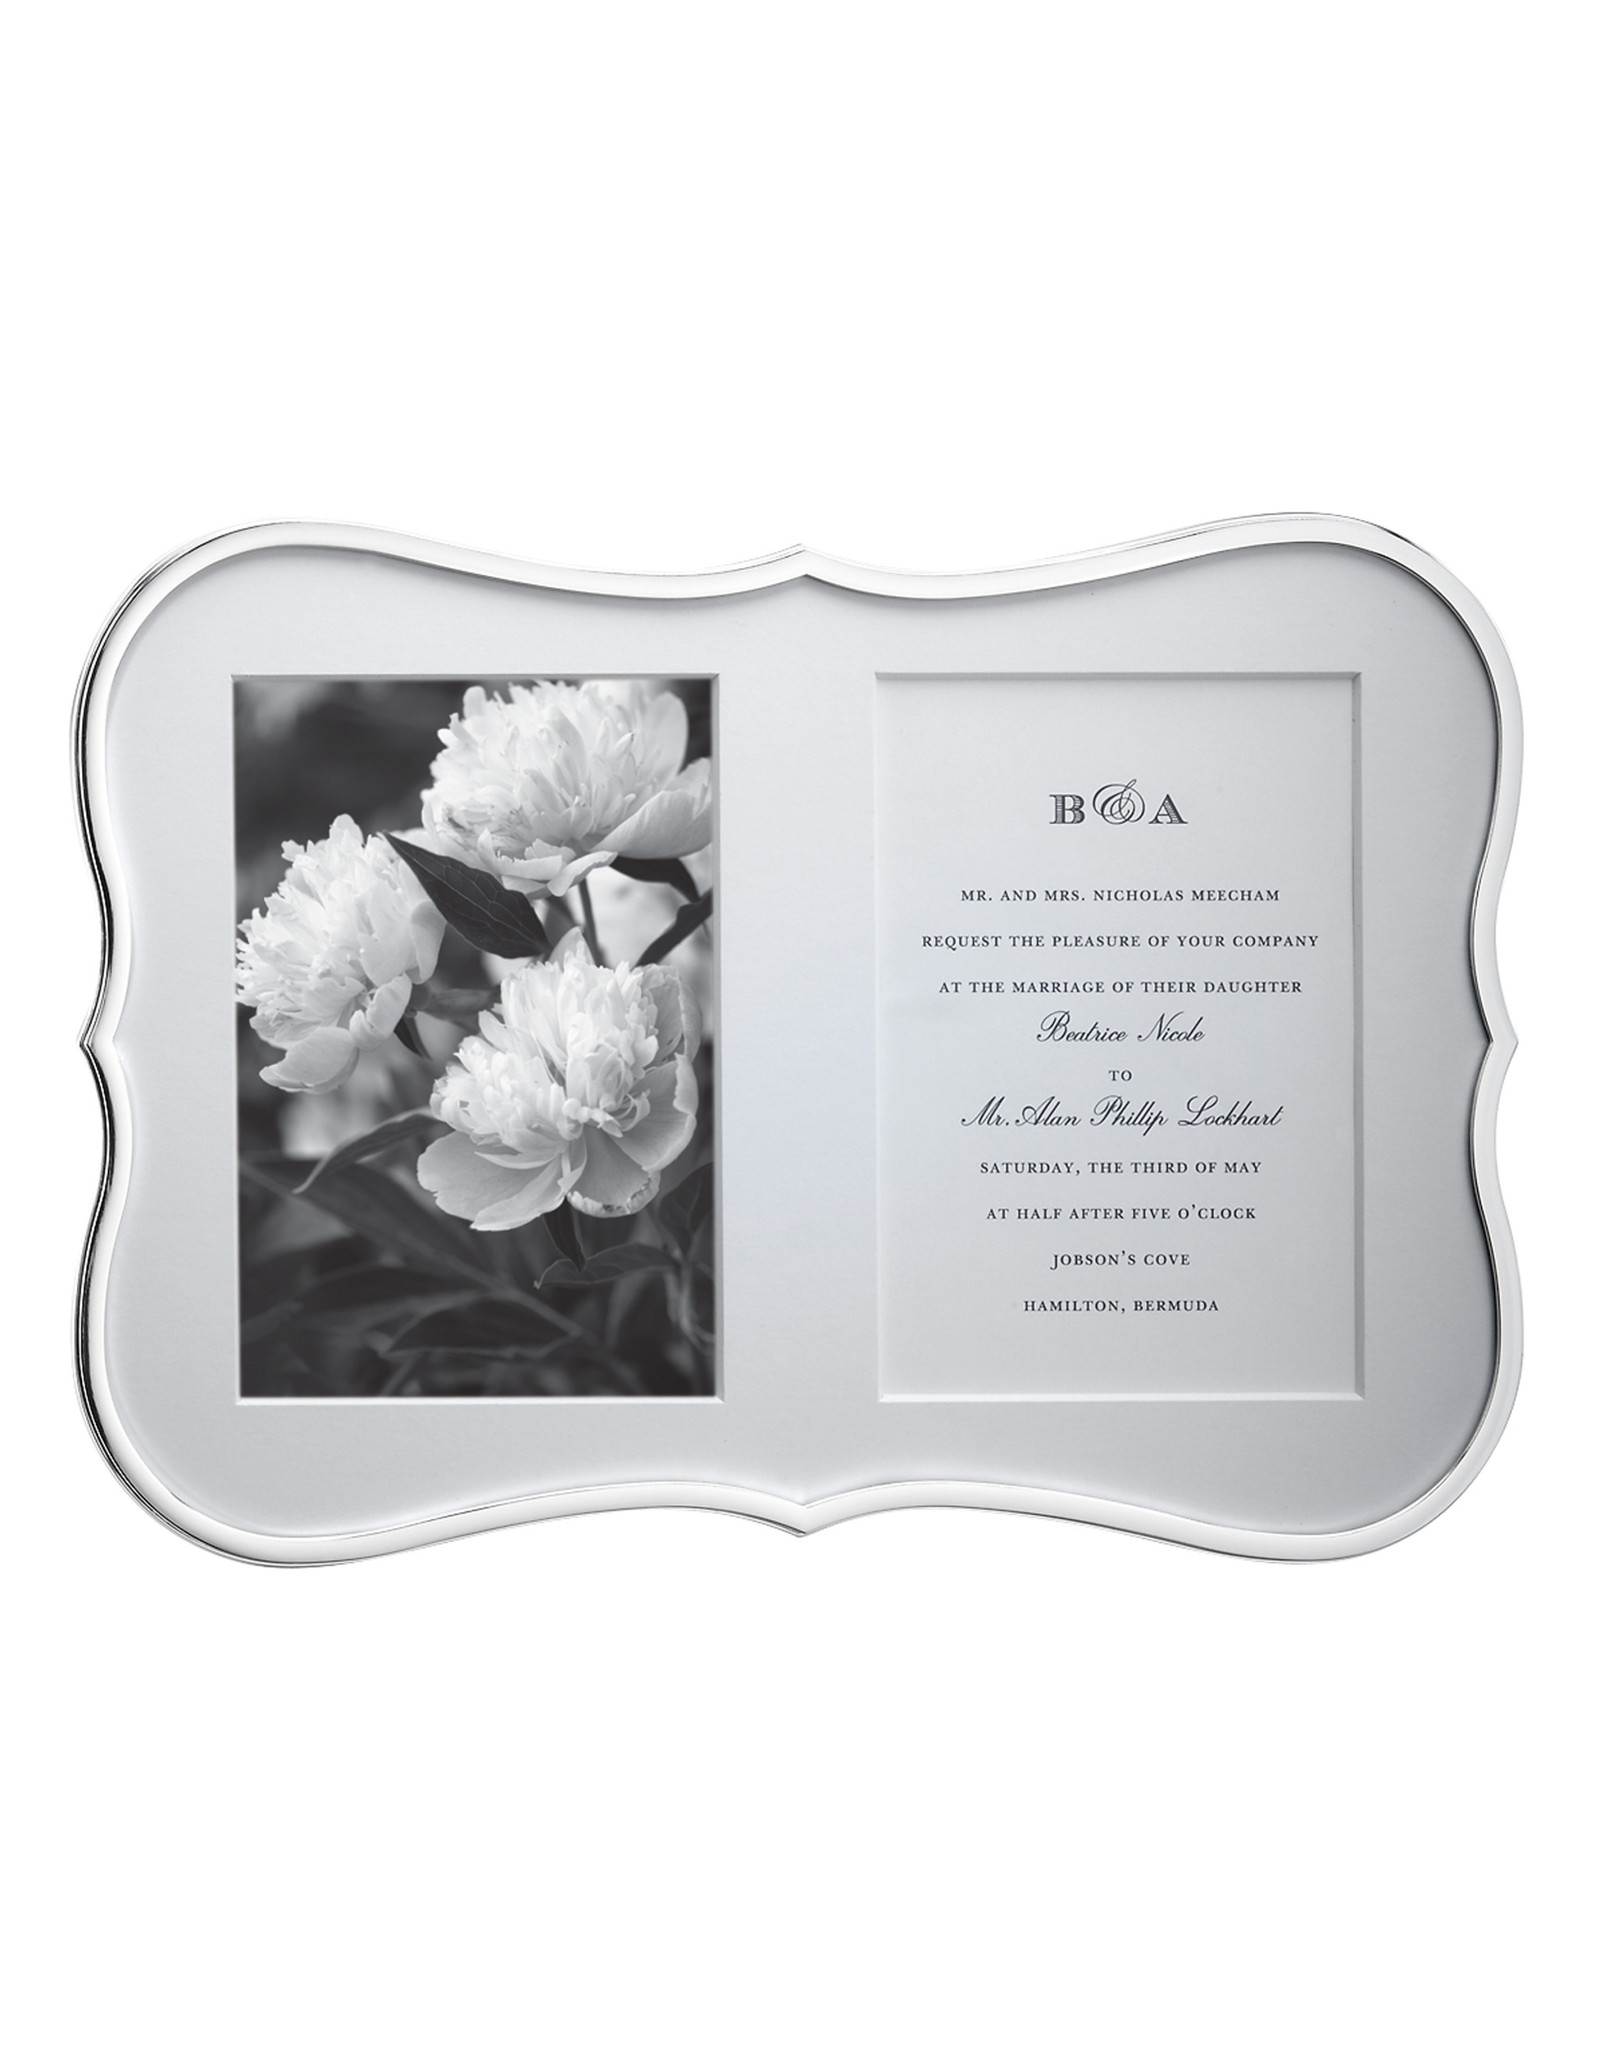 Kate Spade Crown double invitation frame